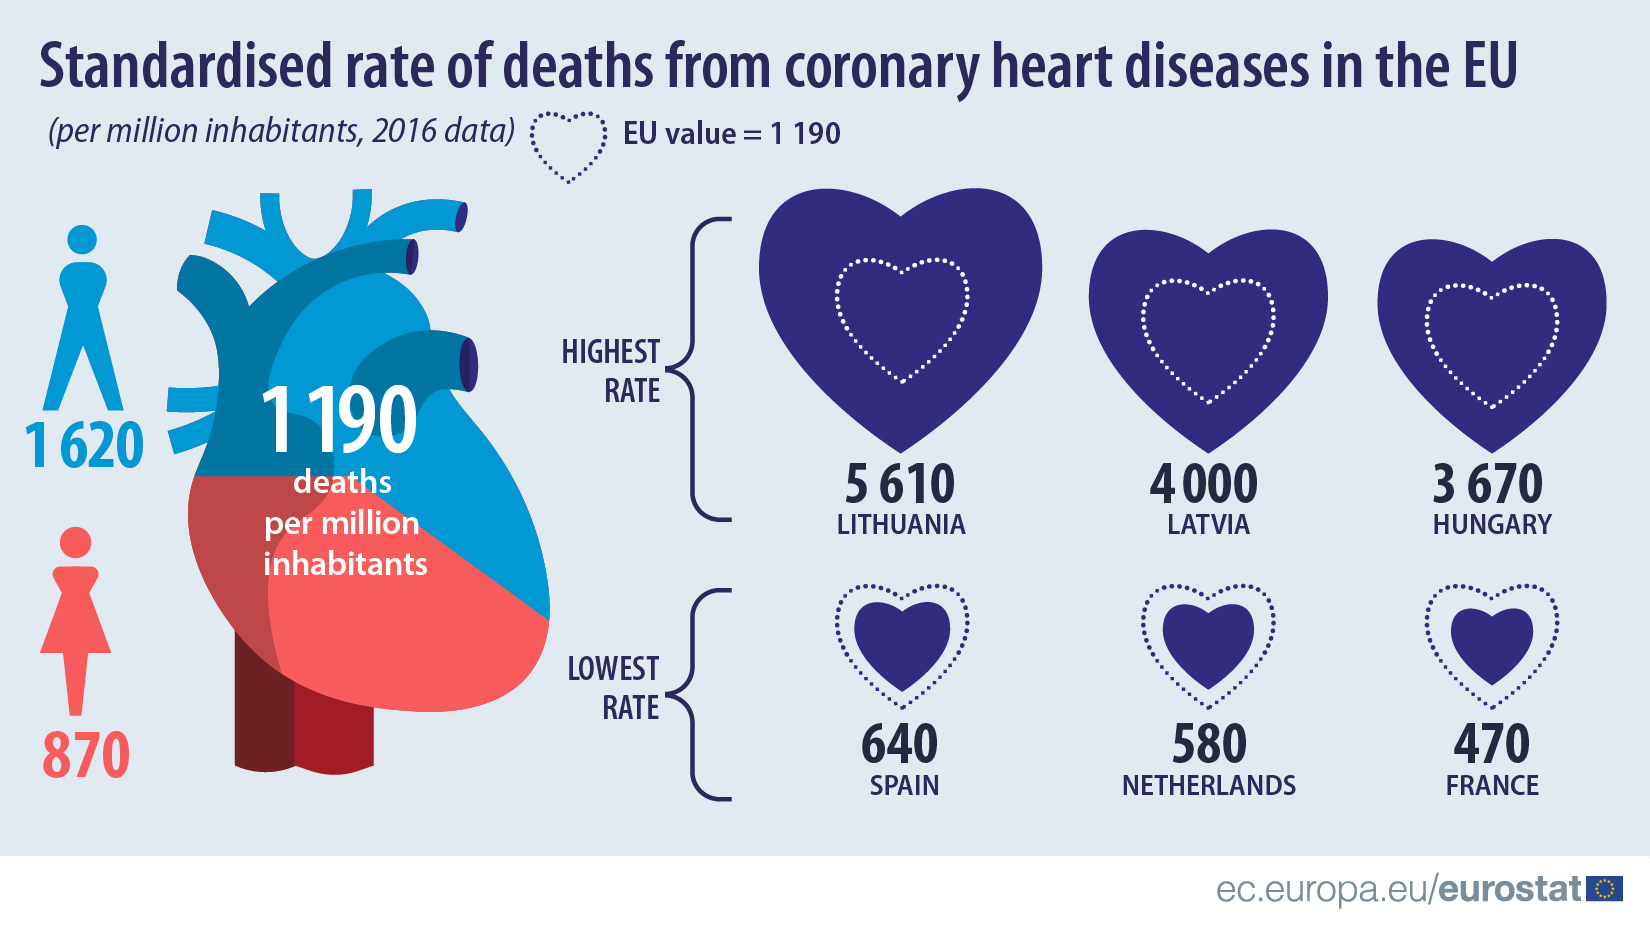 Standardised rate of deaths from coronary heart diseases in the EU, 2016